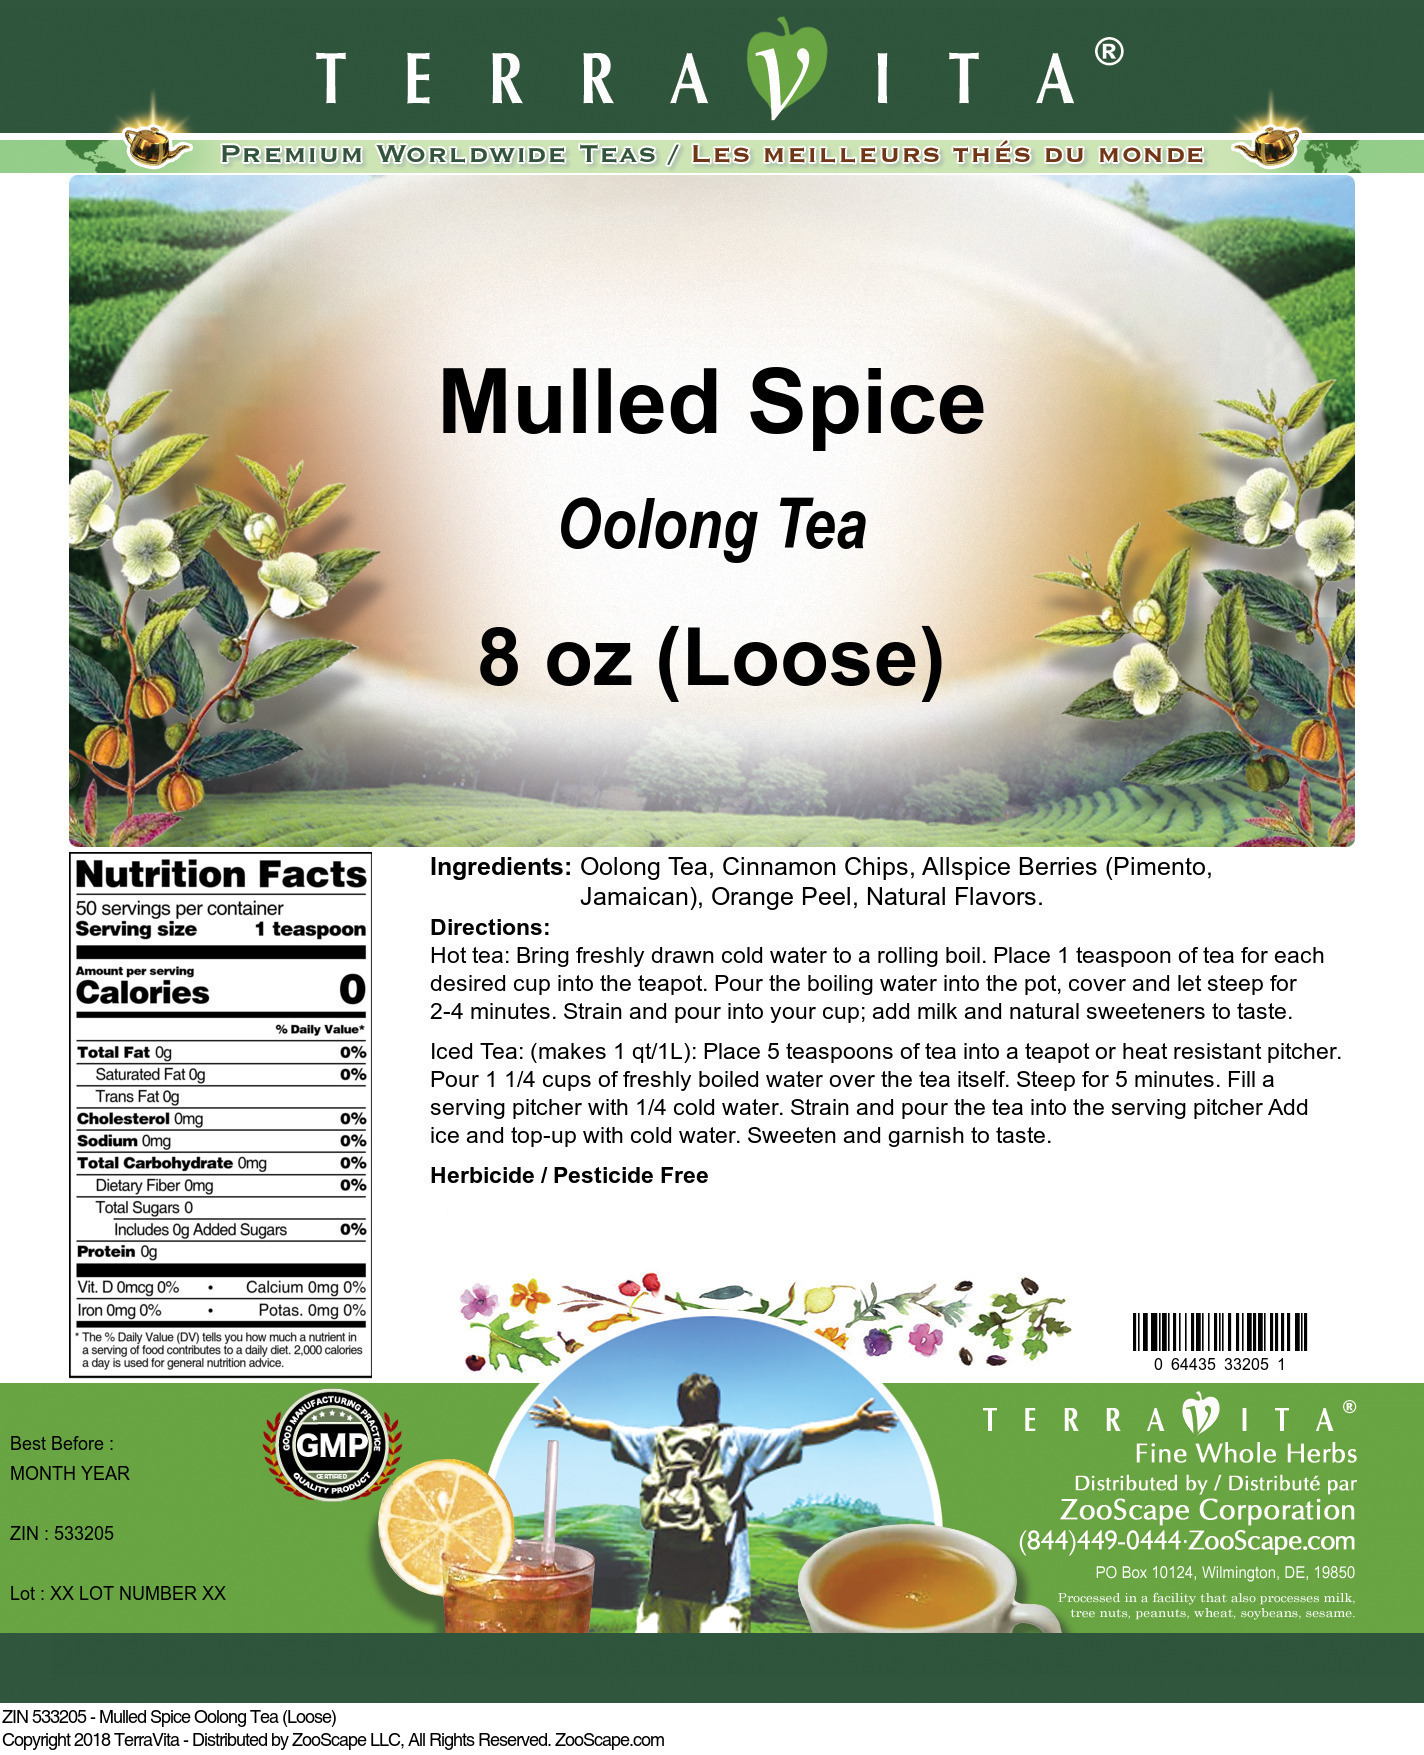 Mulled Spice Oolong Tea